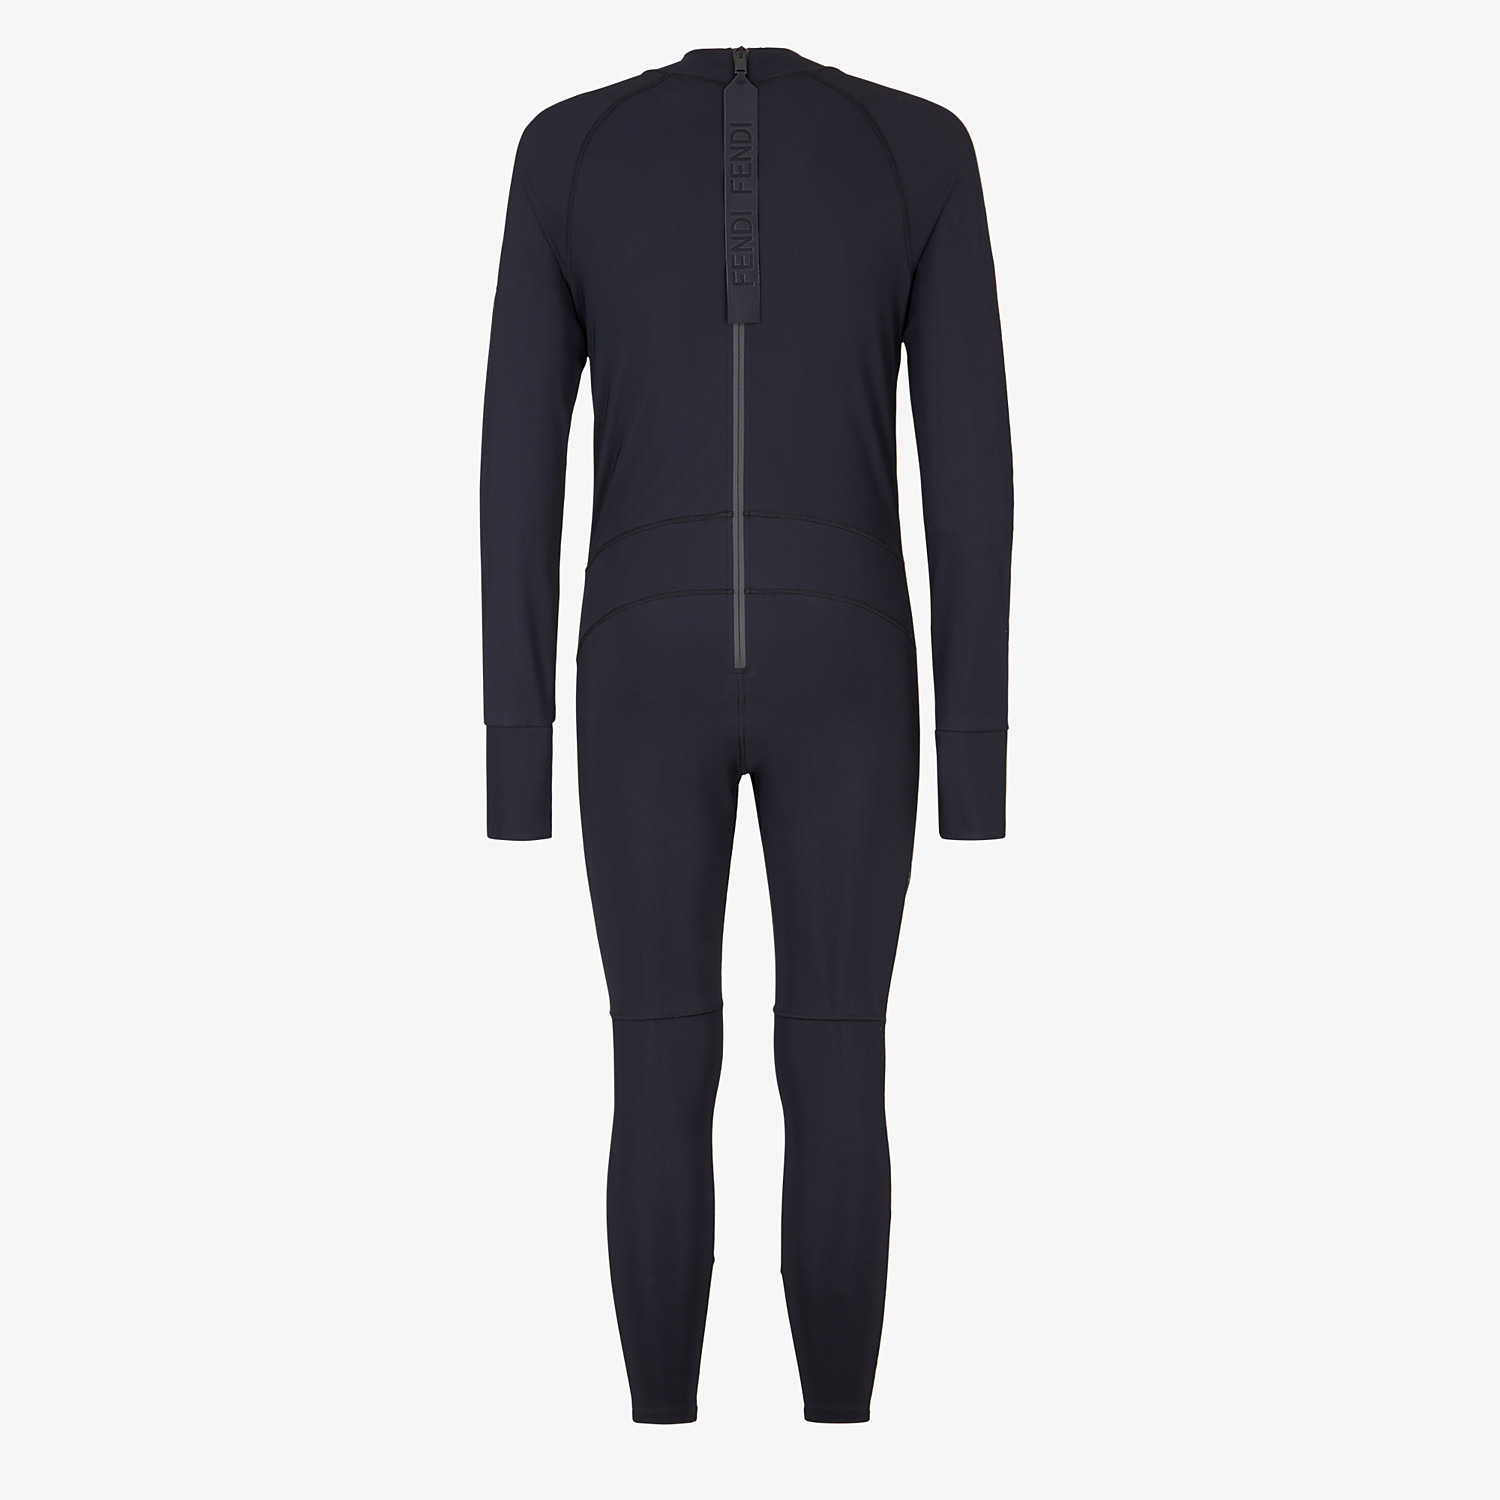 FENDI JUMPSUIT - Black stretch fabric running tracksuit - view 2 detail